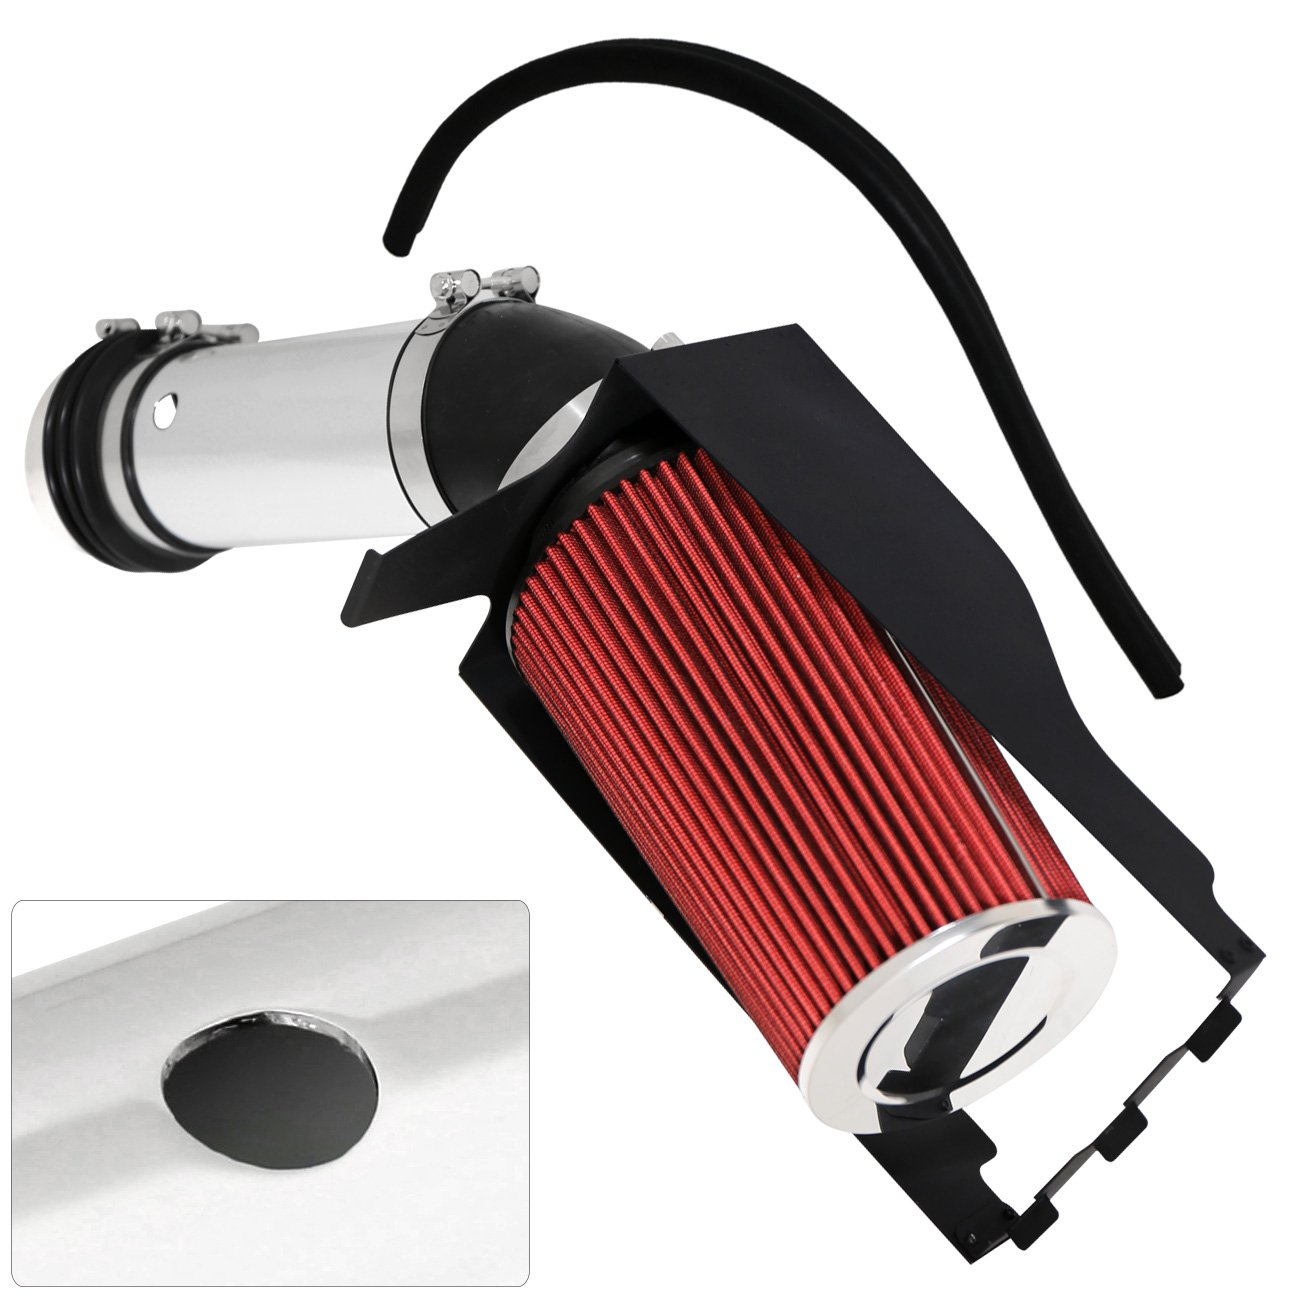 For Ford F250 F350 F450 Excursion 7.3L V8 High Flow Induction Air Intake System + Heat Shield Chrome Piping Kit